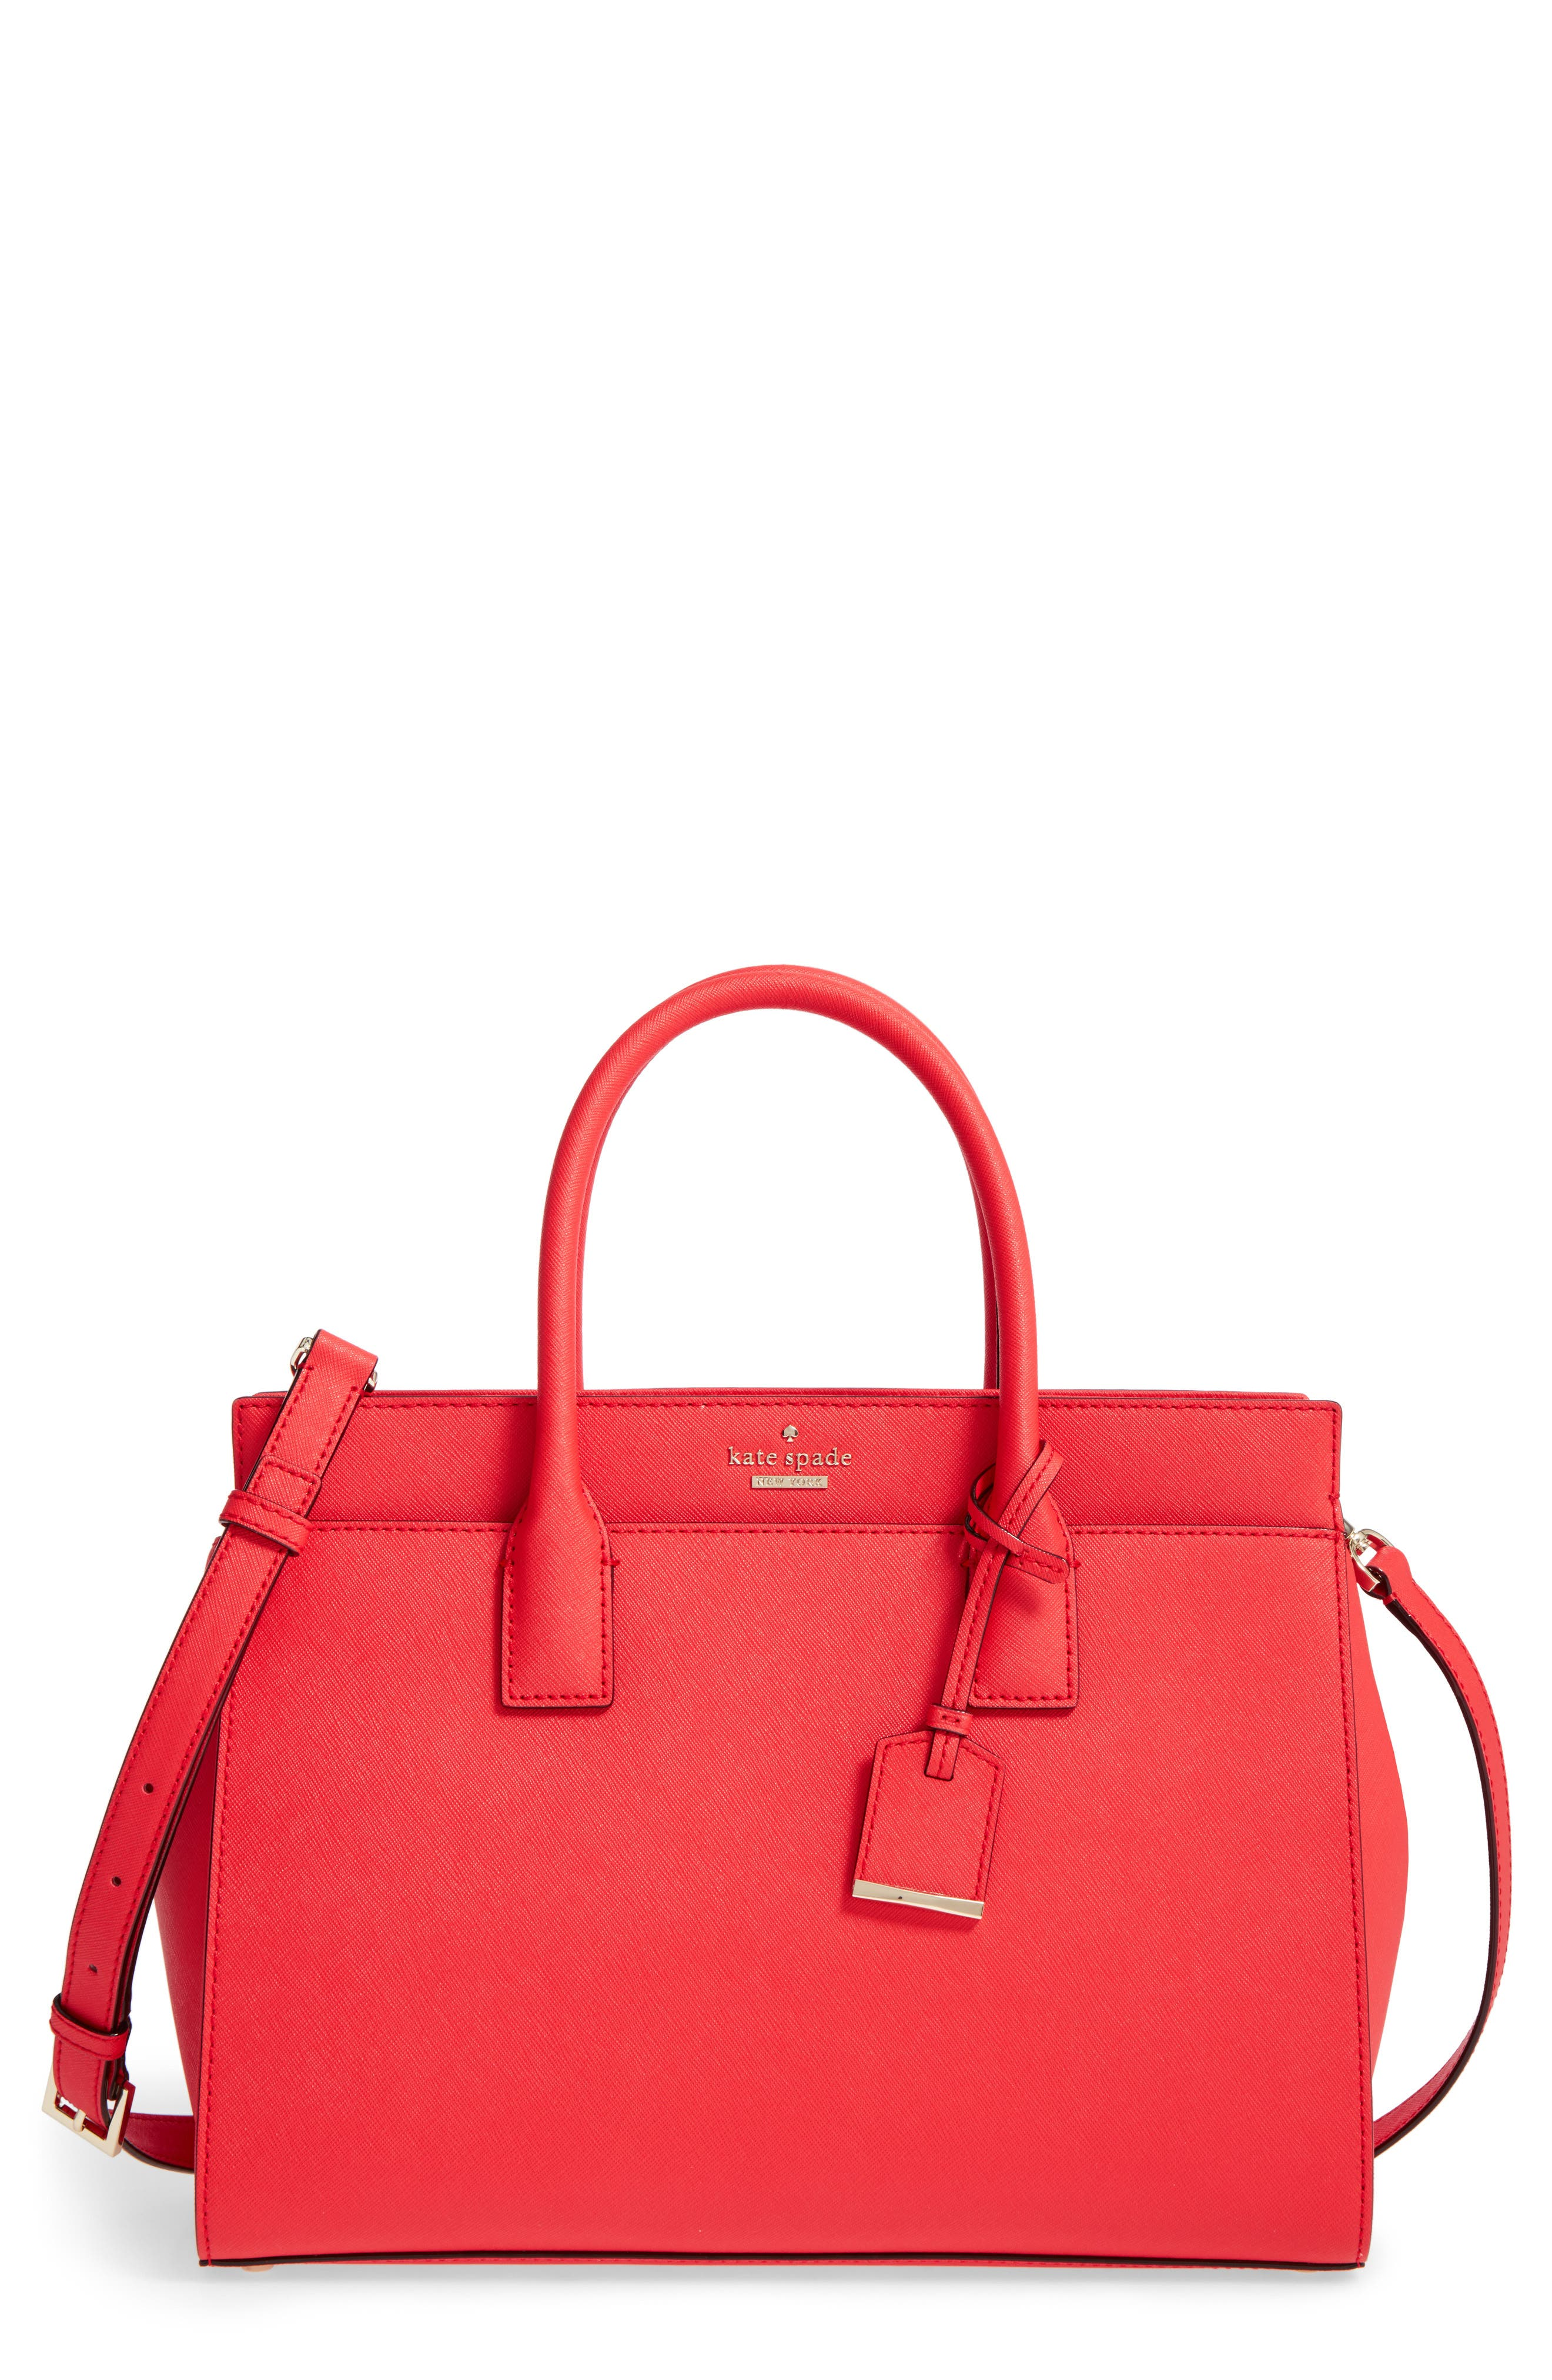 KATE SPADE NEW YORK cameron street - candace